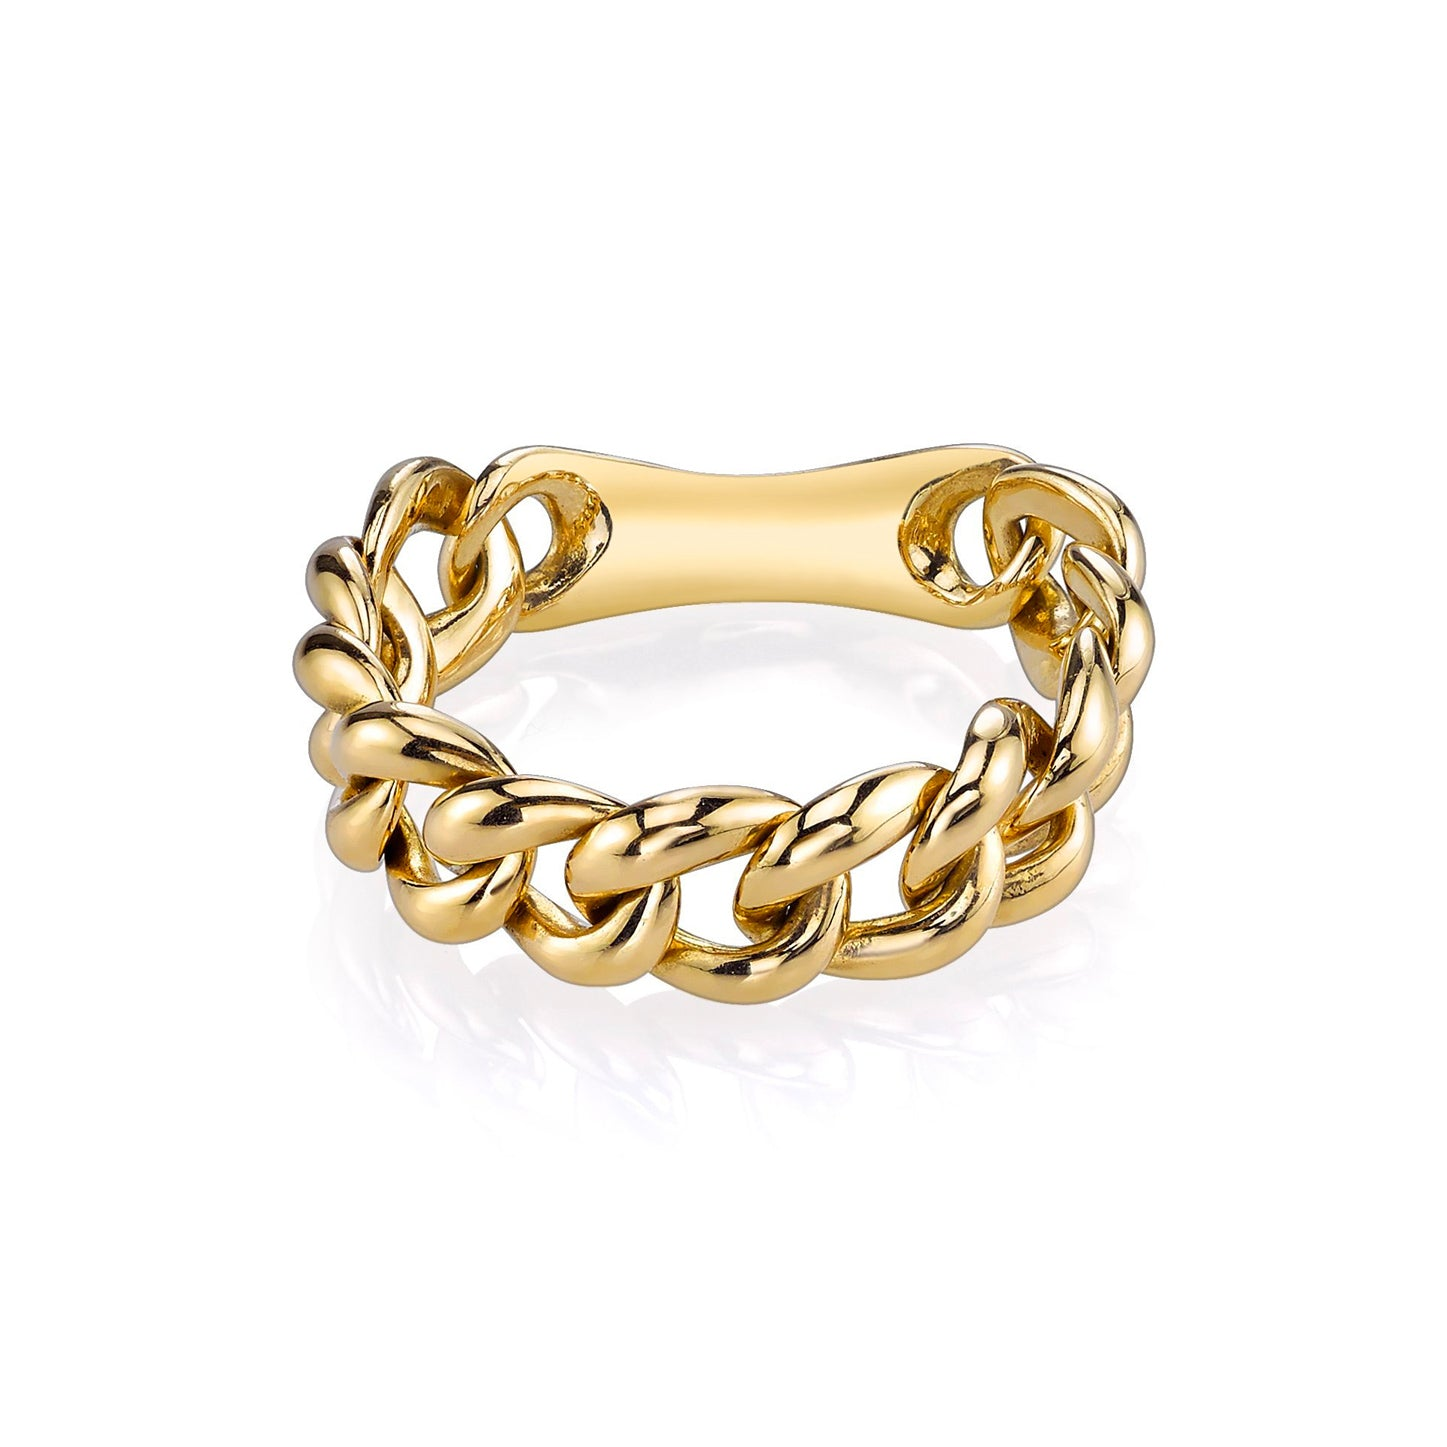 Chain Ring - Gabriela Artigas